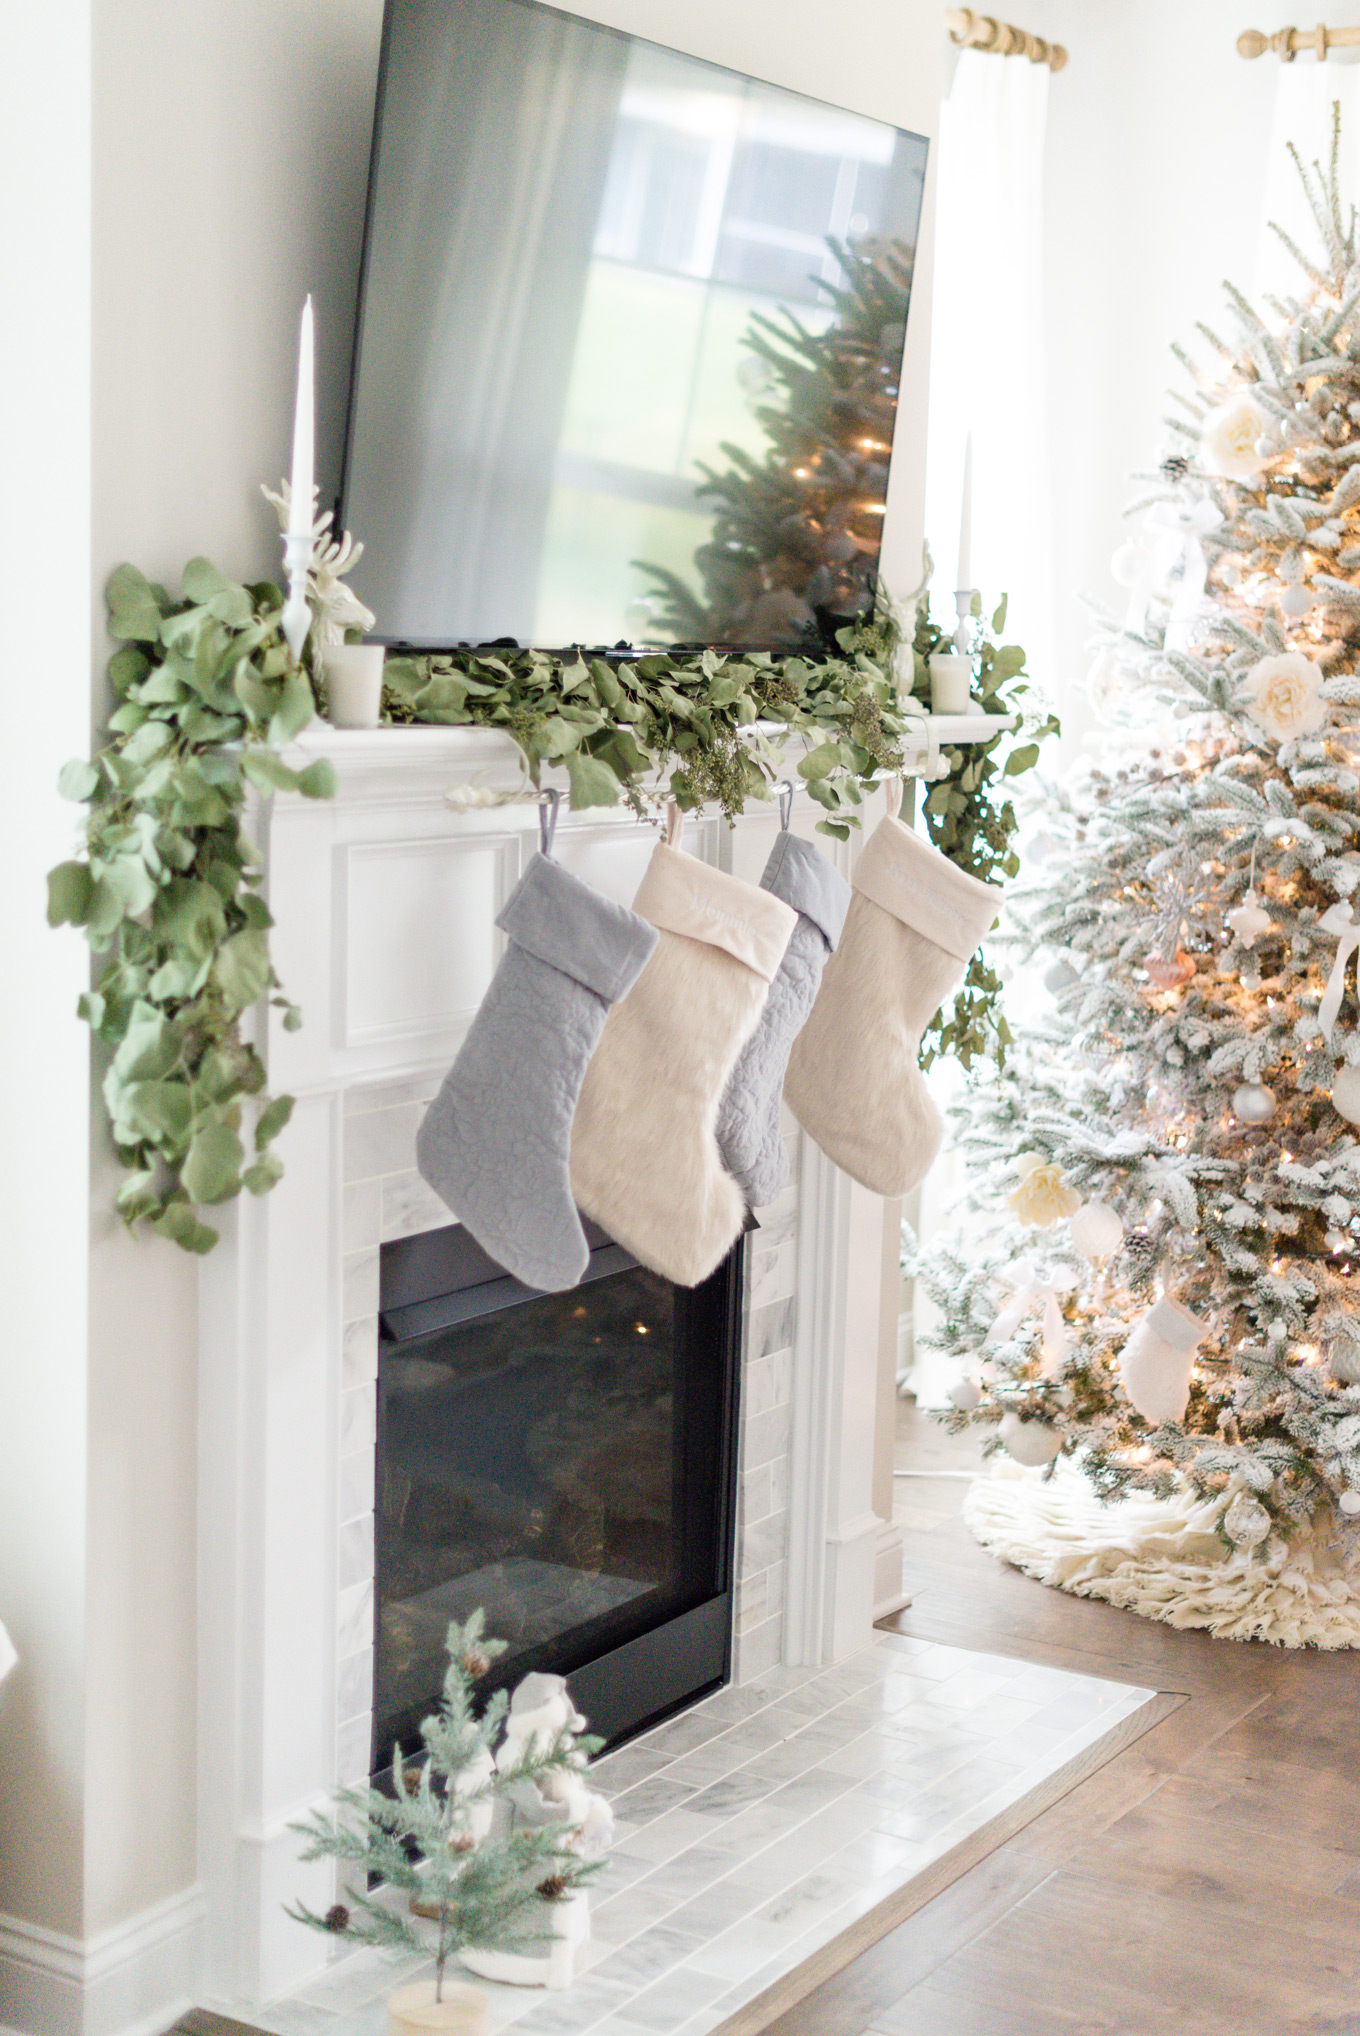 Holiday Design | Lifestyle Blogger Elle Bowes shares holiday home decor ideas.